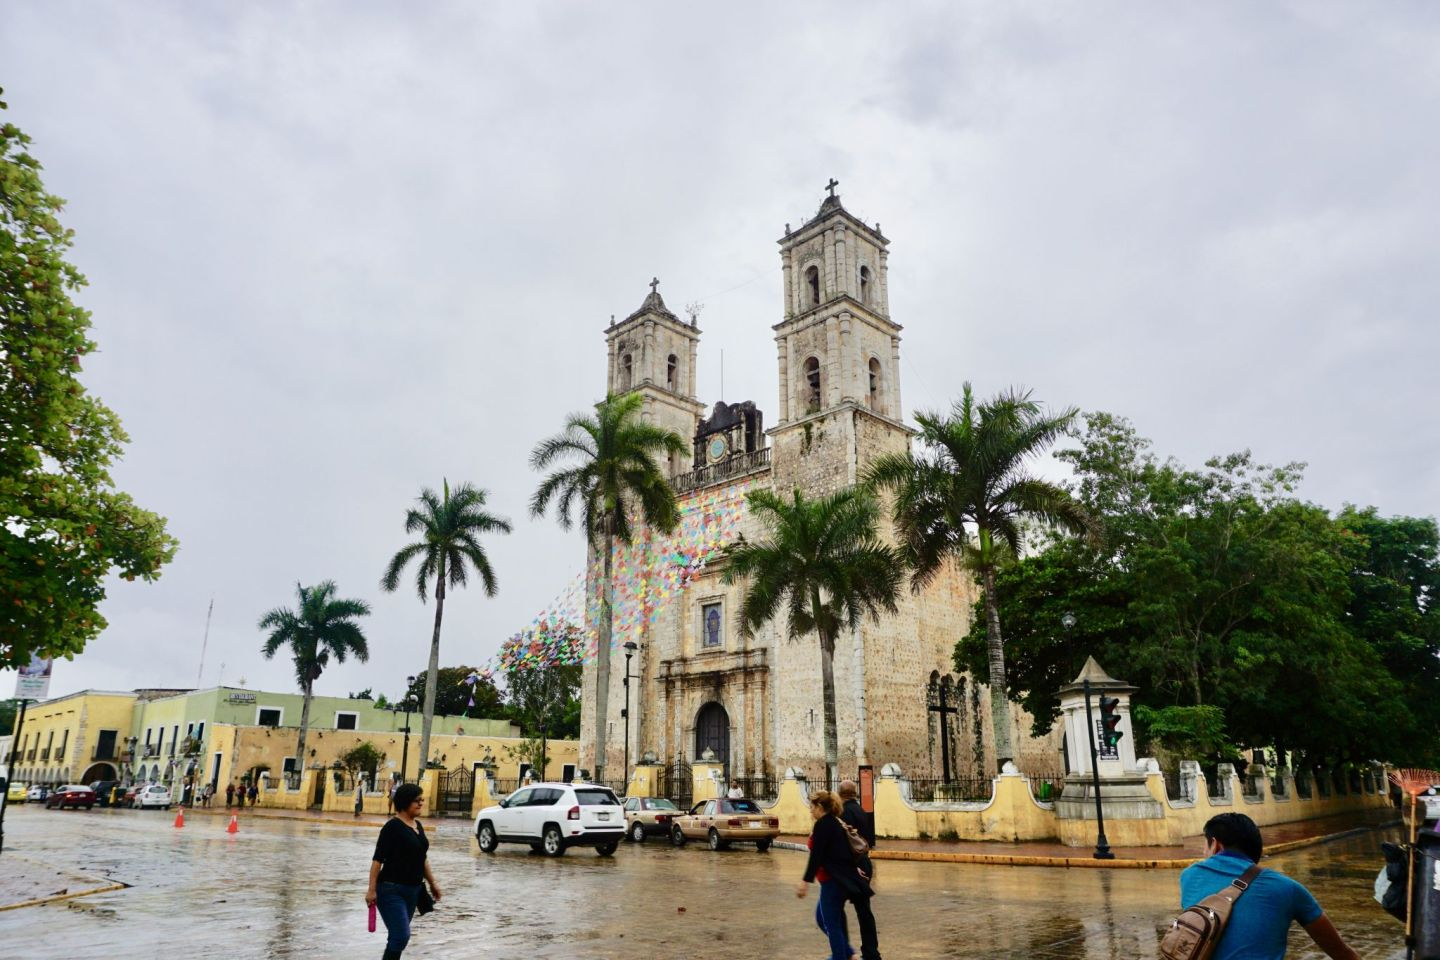 Things to do in colonial Valladolid in Mexico